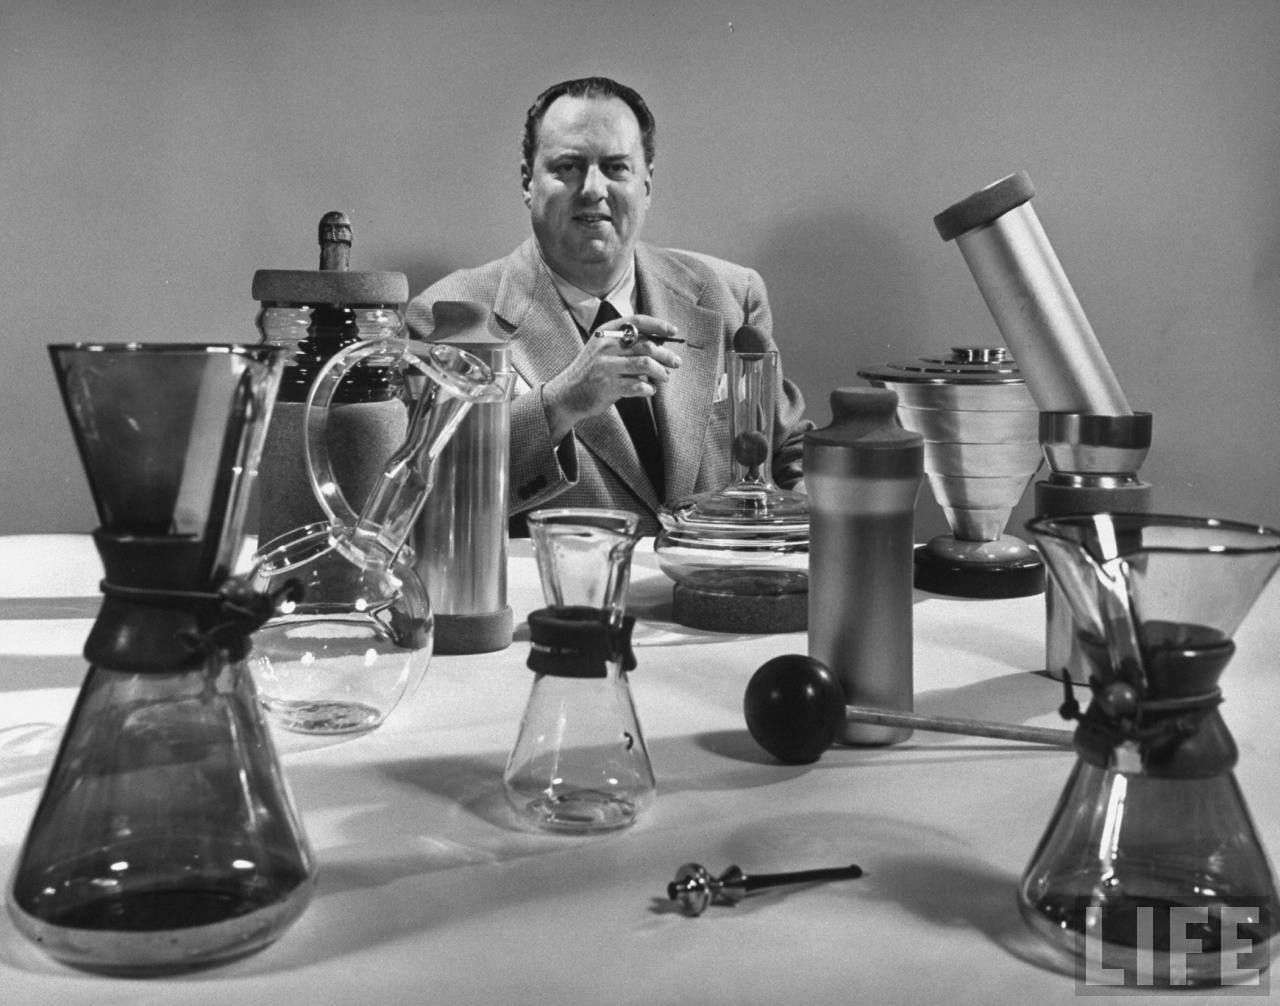 Peter Schlumbolm who invented the Chemex coffee maker in